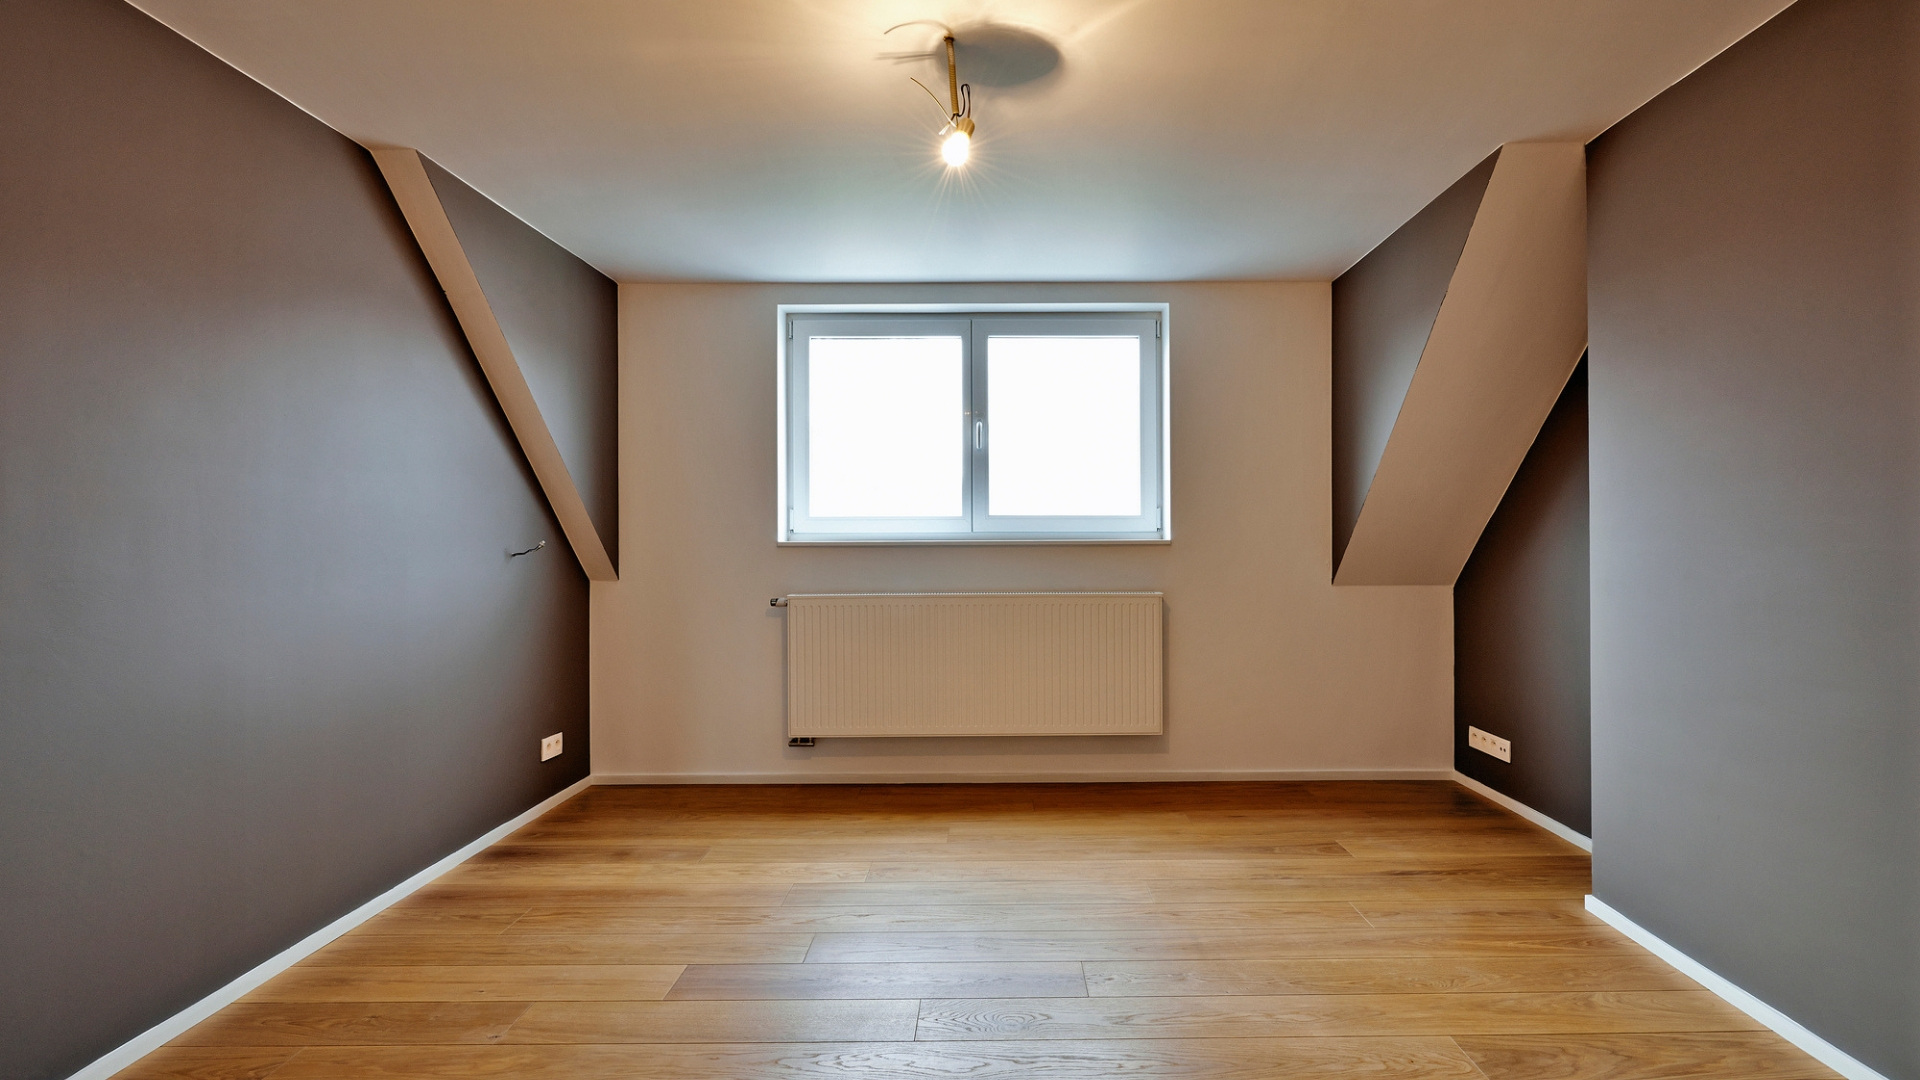 average cost of a room addition